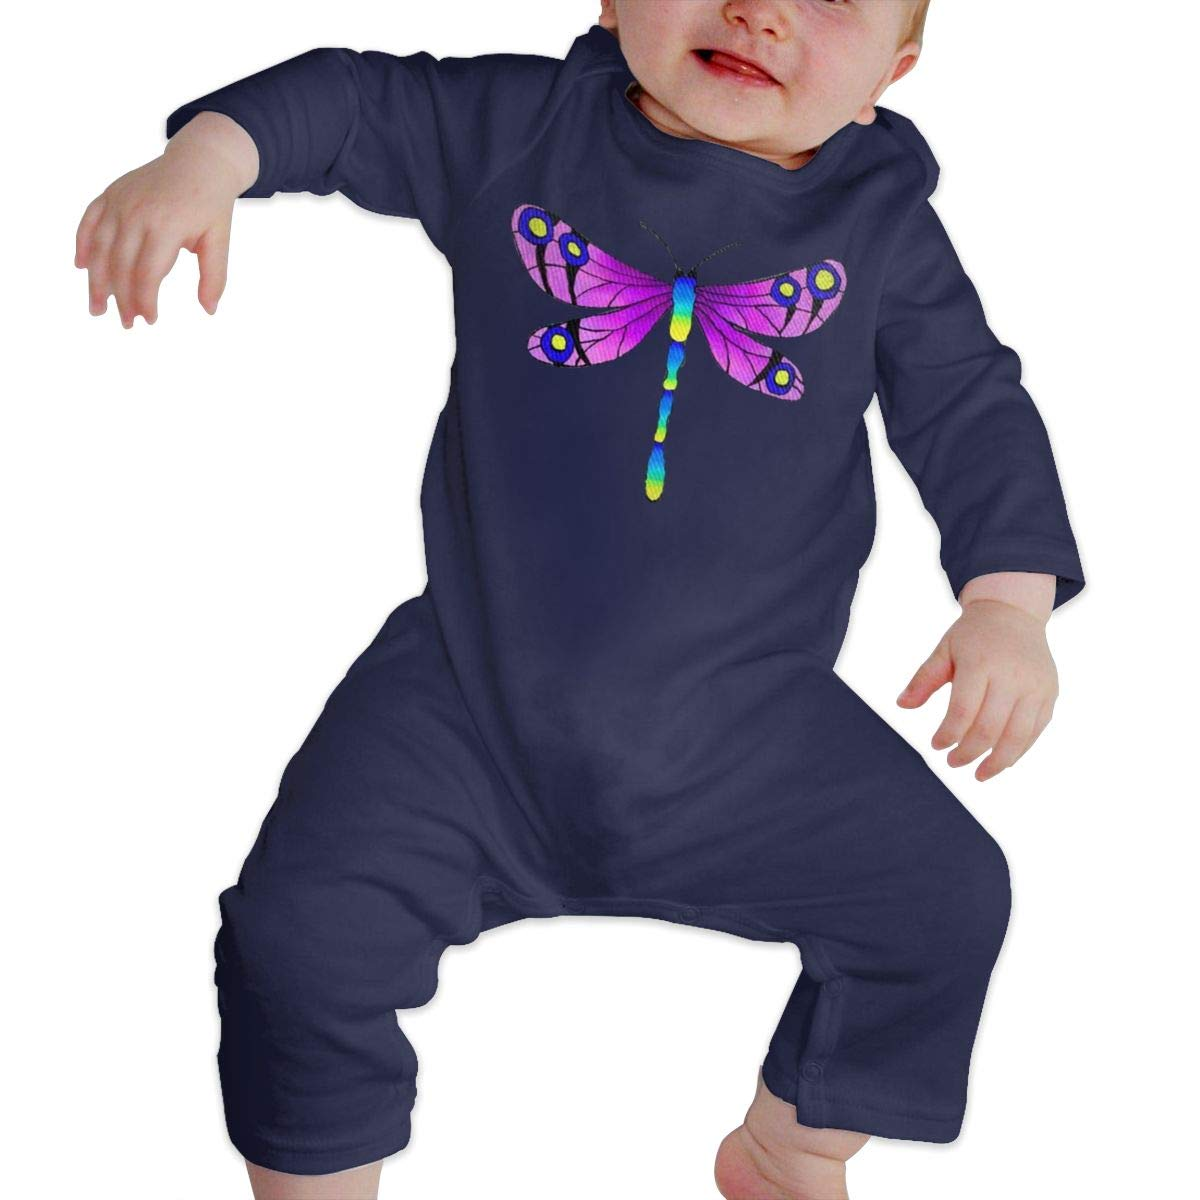 SININIDR Newborn Jumpsuit Infant Baby Girls Colorful Dragonfly Long-Sleeve Bodysuit Playsuit Outfits Clothes Black